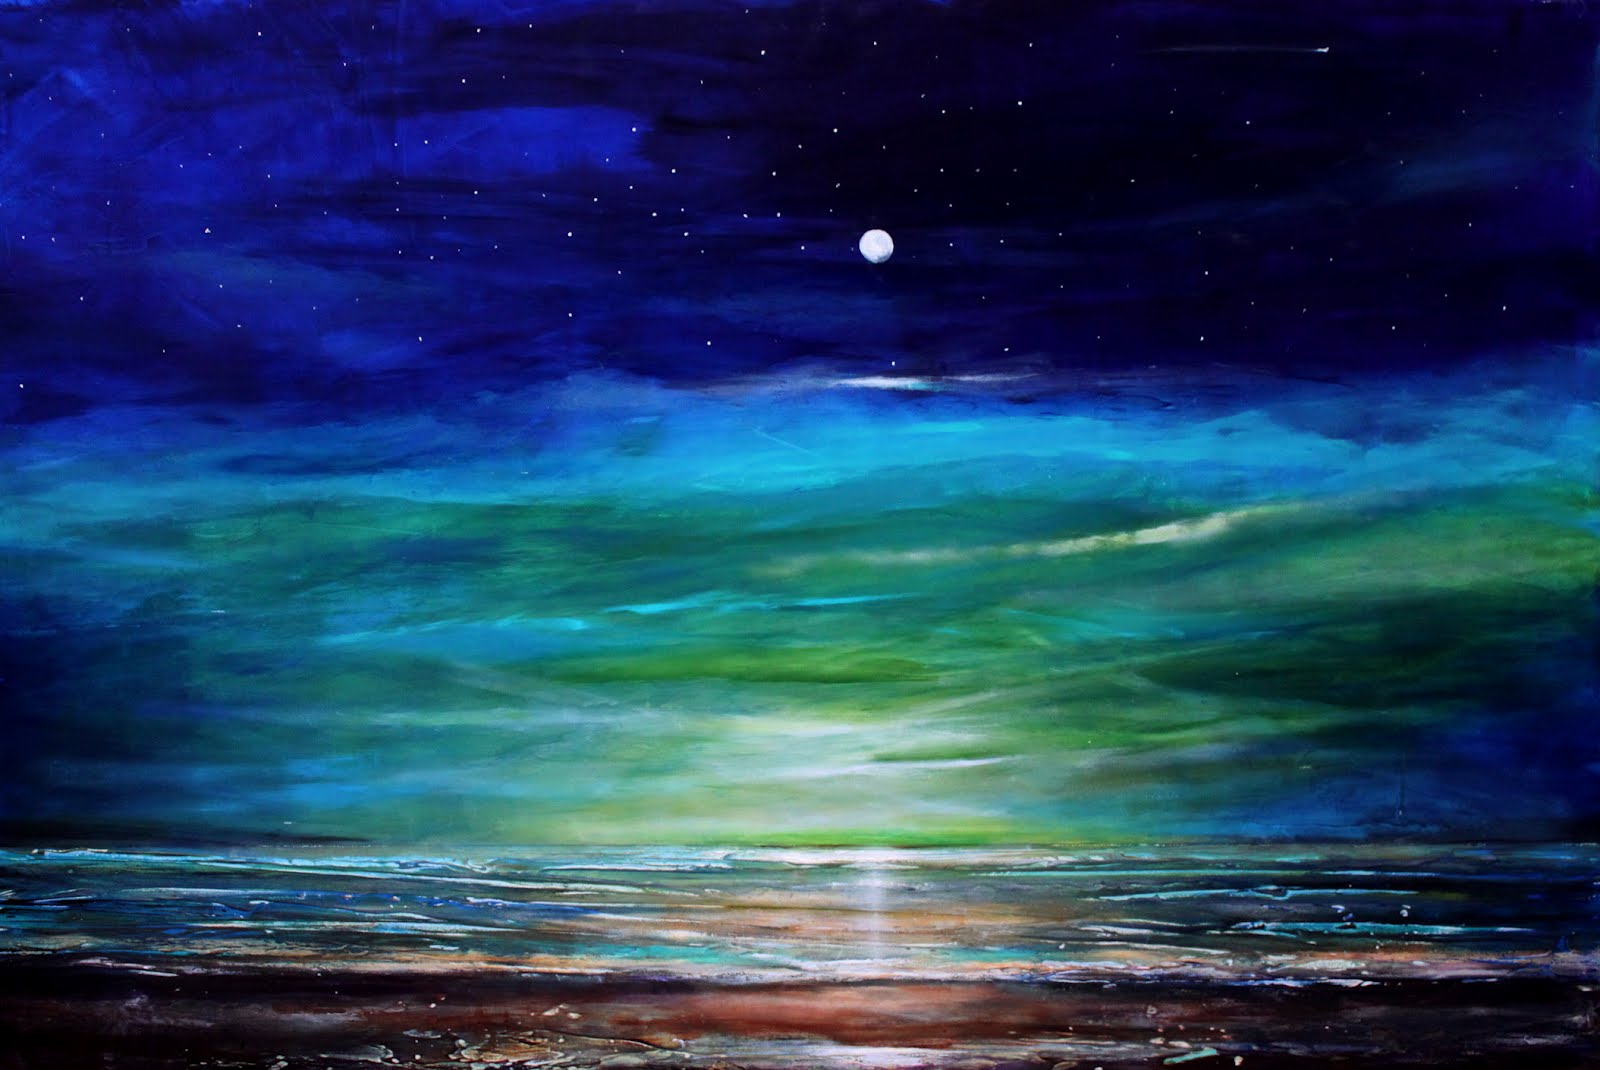 May 2 Large 24x36 Blue Nighttime Beach Texture Seascape Landscape